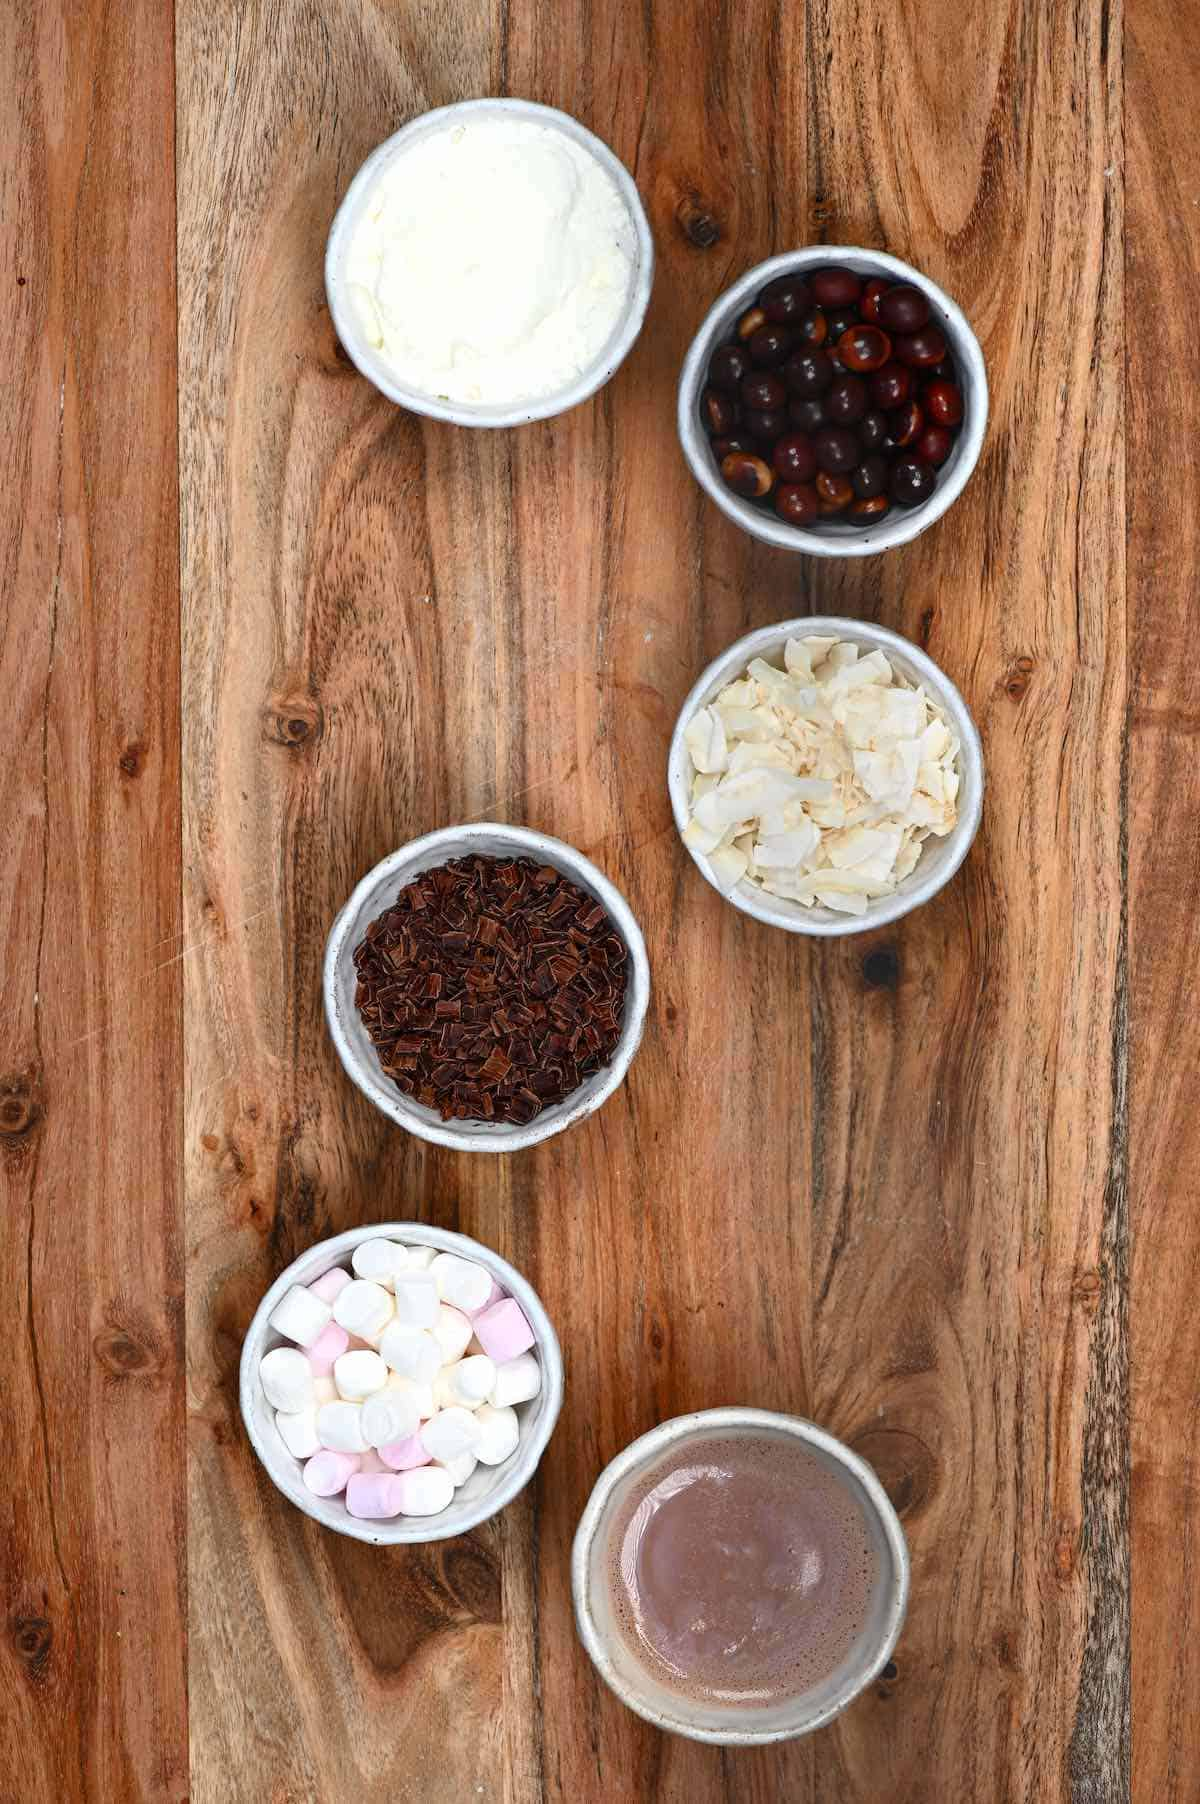 Different toppings for hot chocolate placed in small bowls